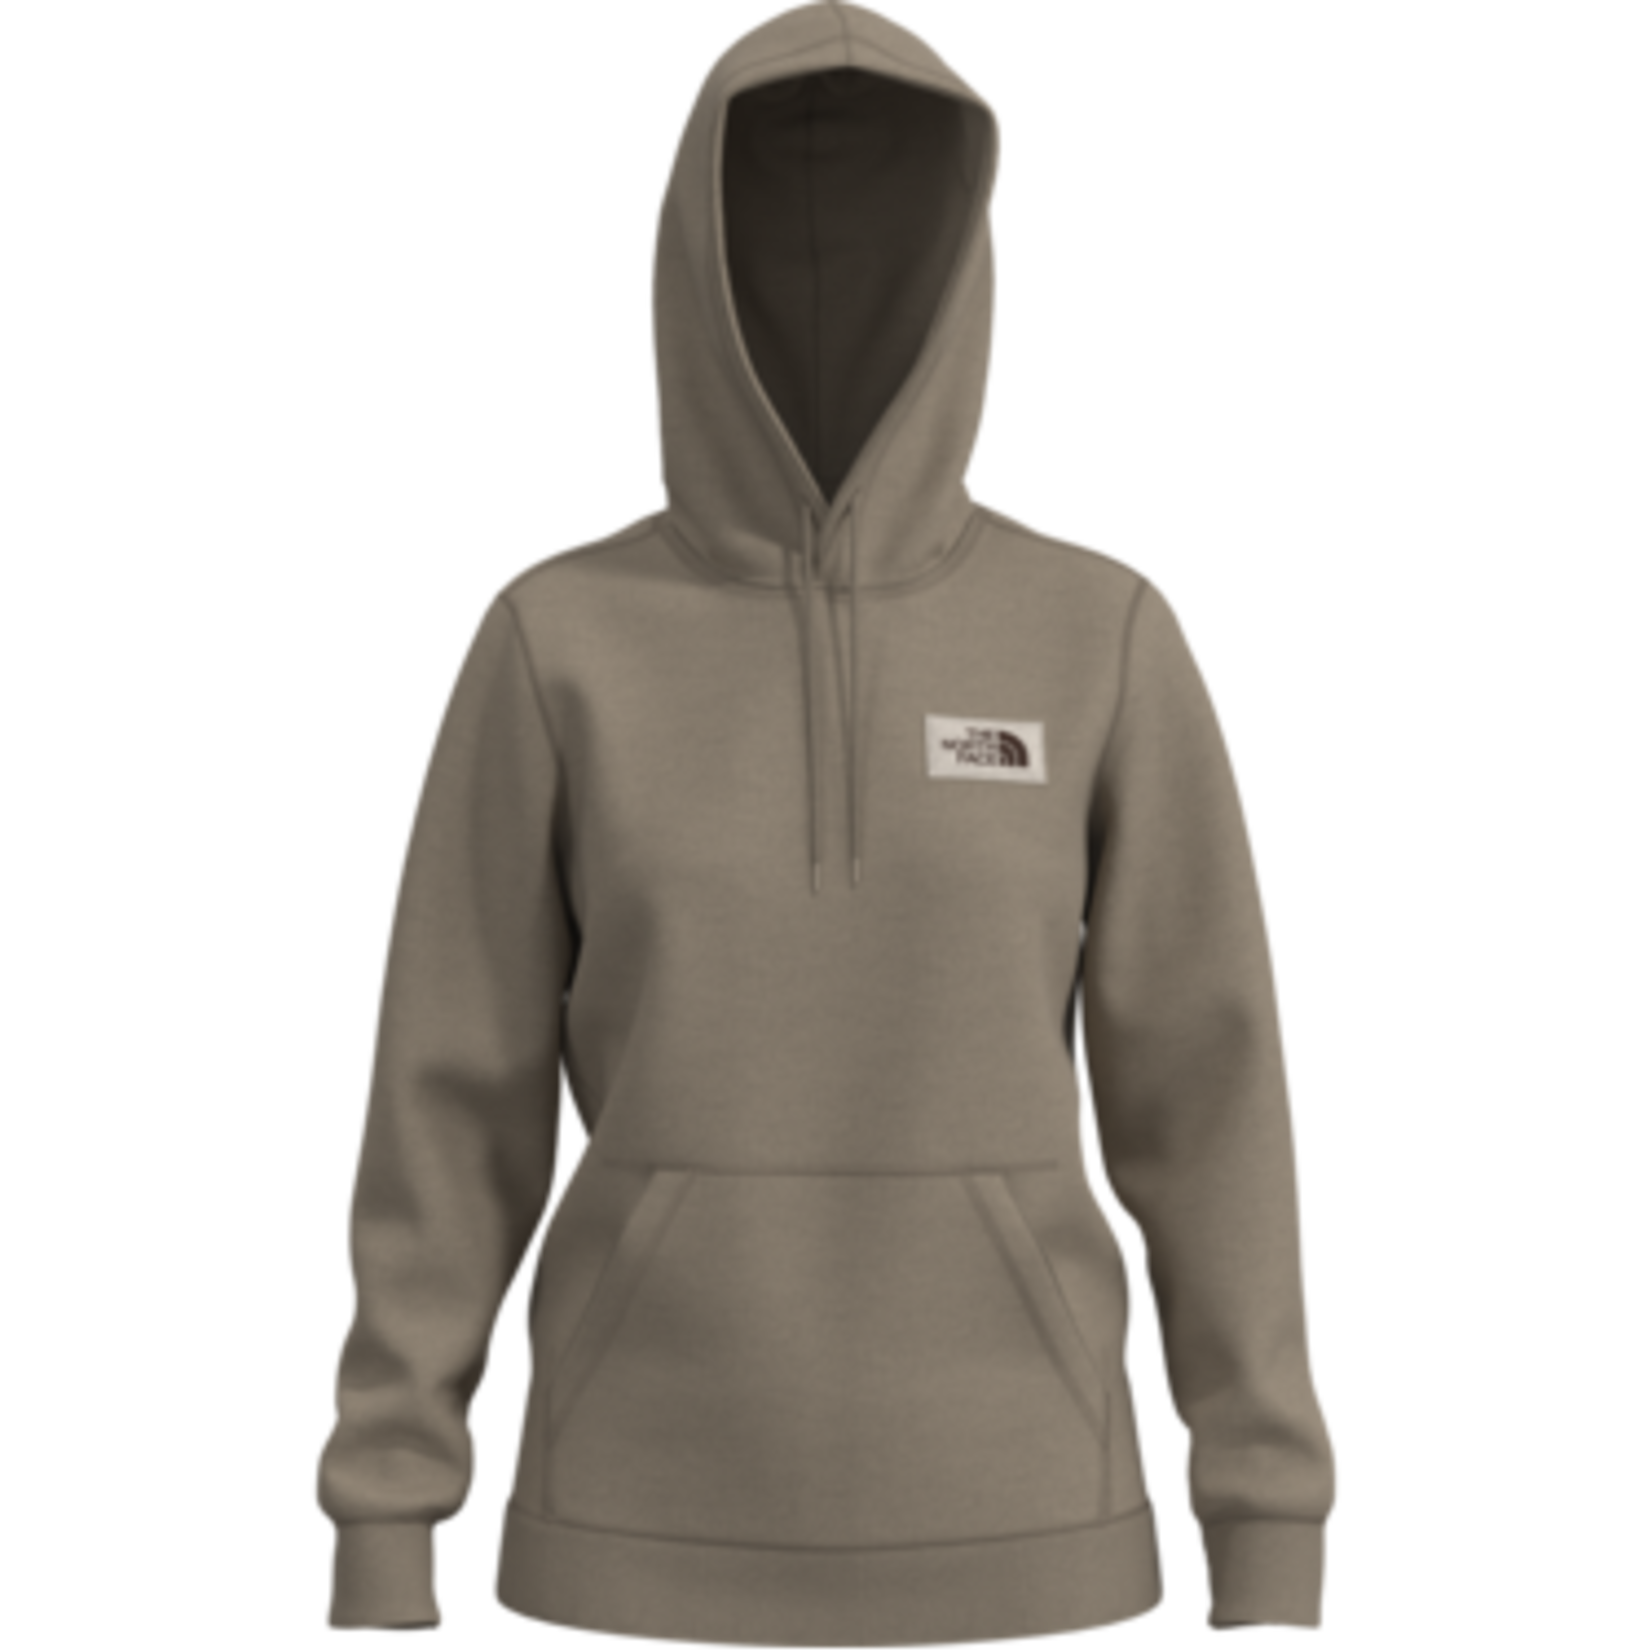 The North Face The North Face Hoodie, Heritage Patch Pullover, Ladies